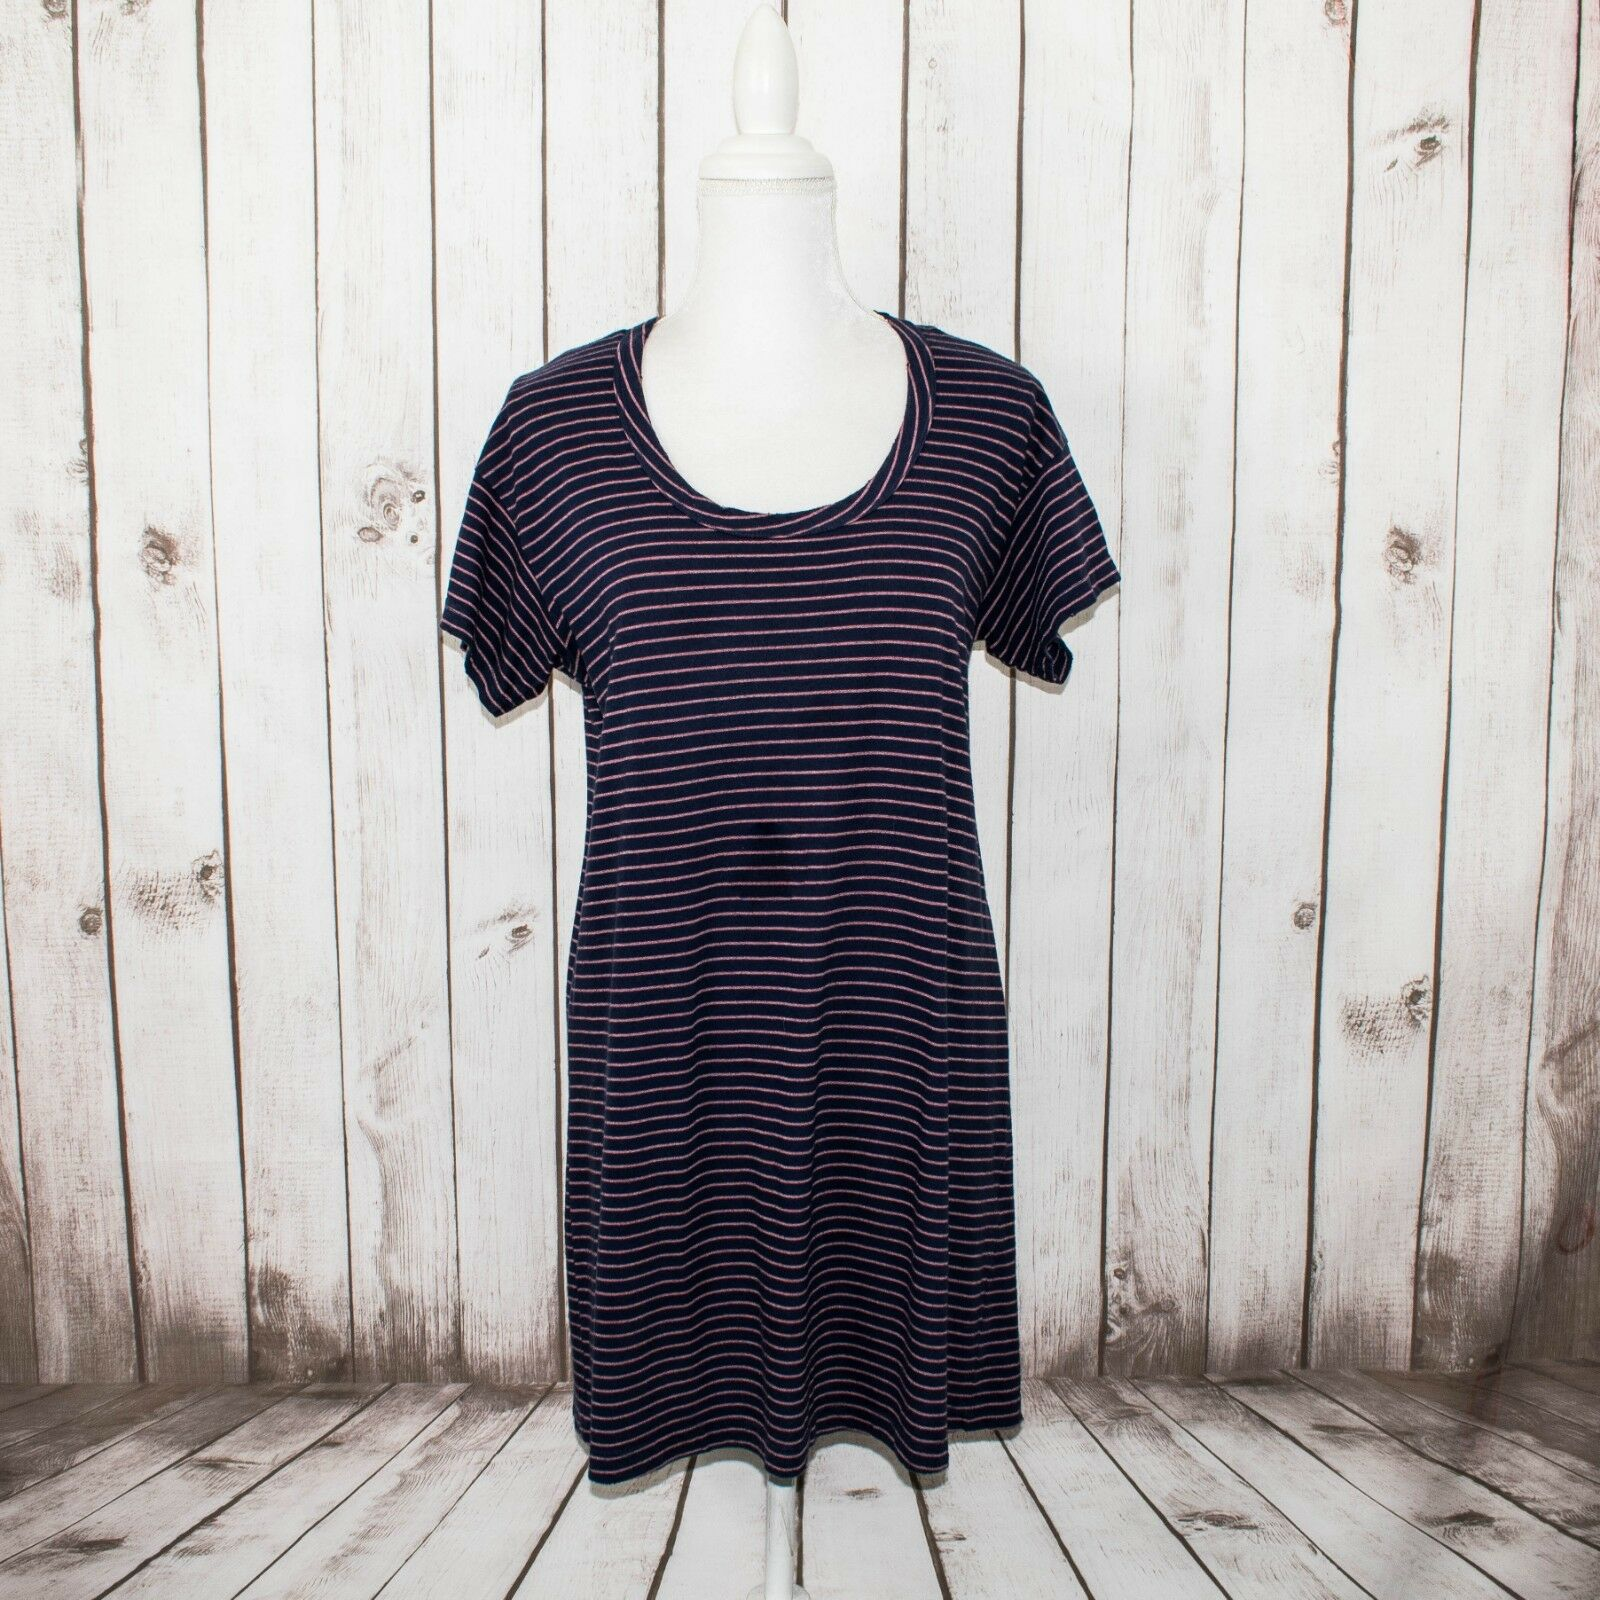 Current Elliott Women's Crew Knit Tee Dress bluee Pink Striped Distressed Size 0